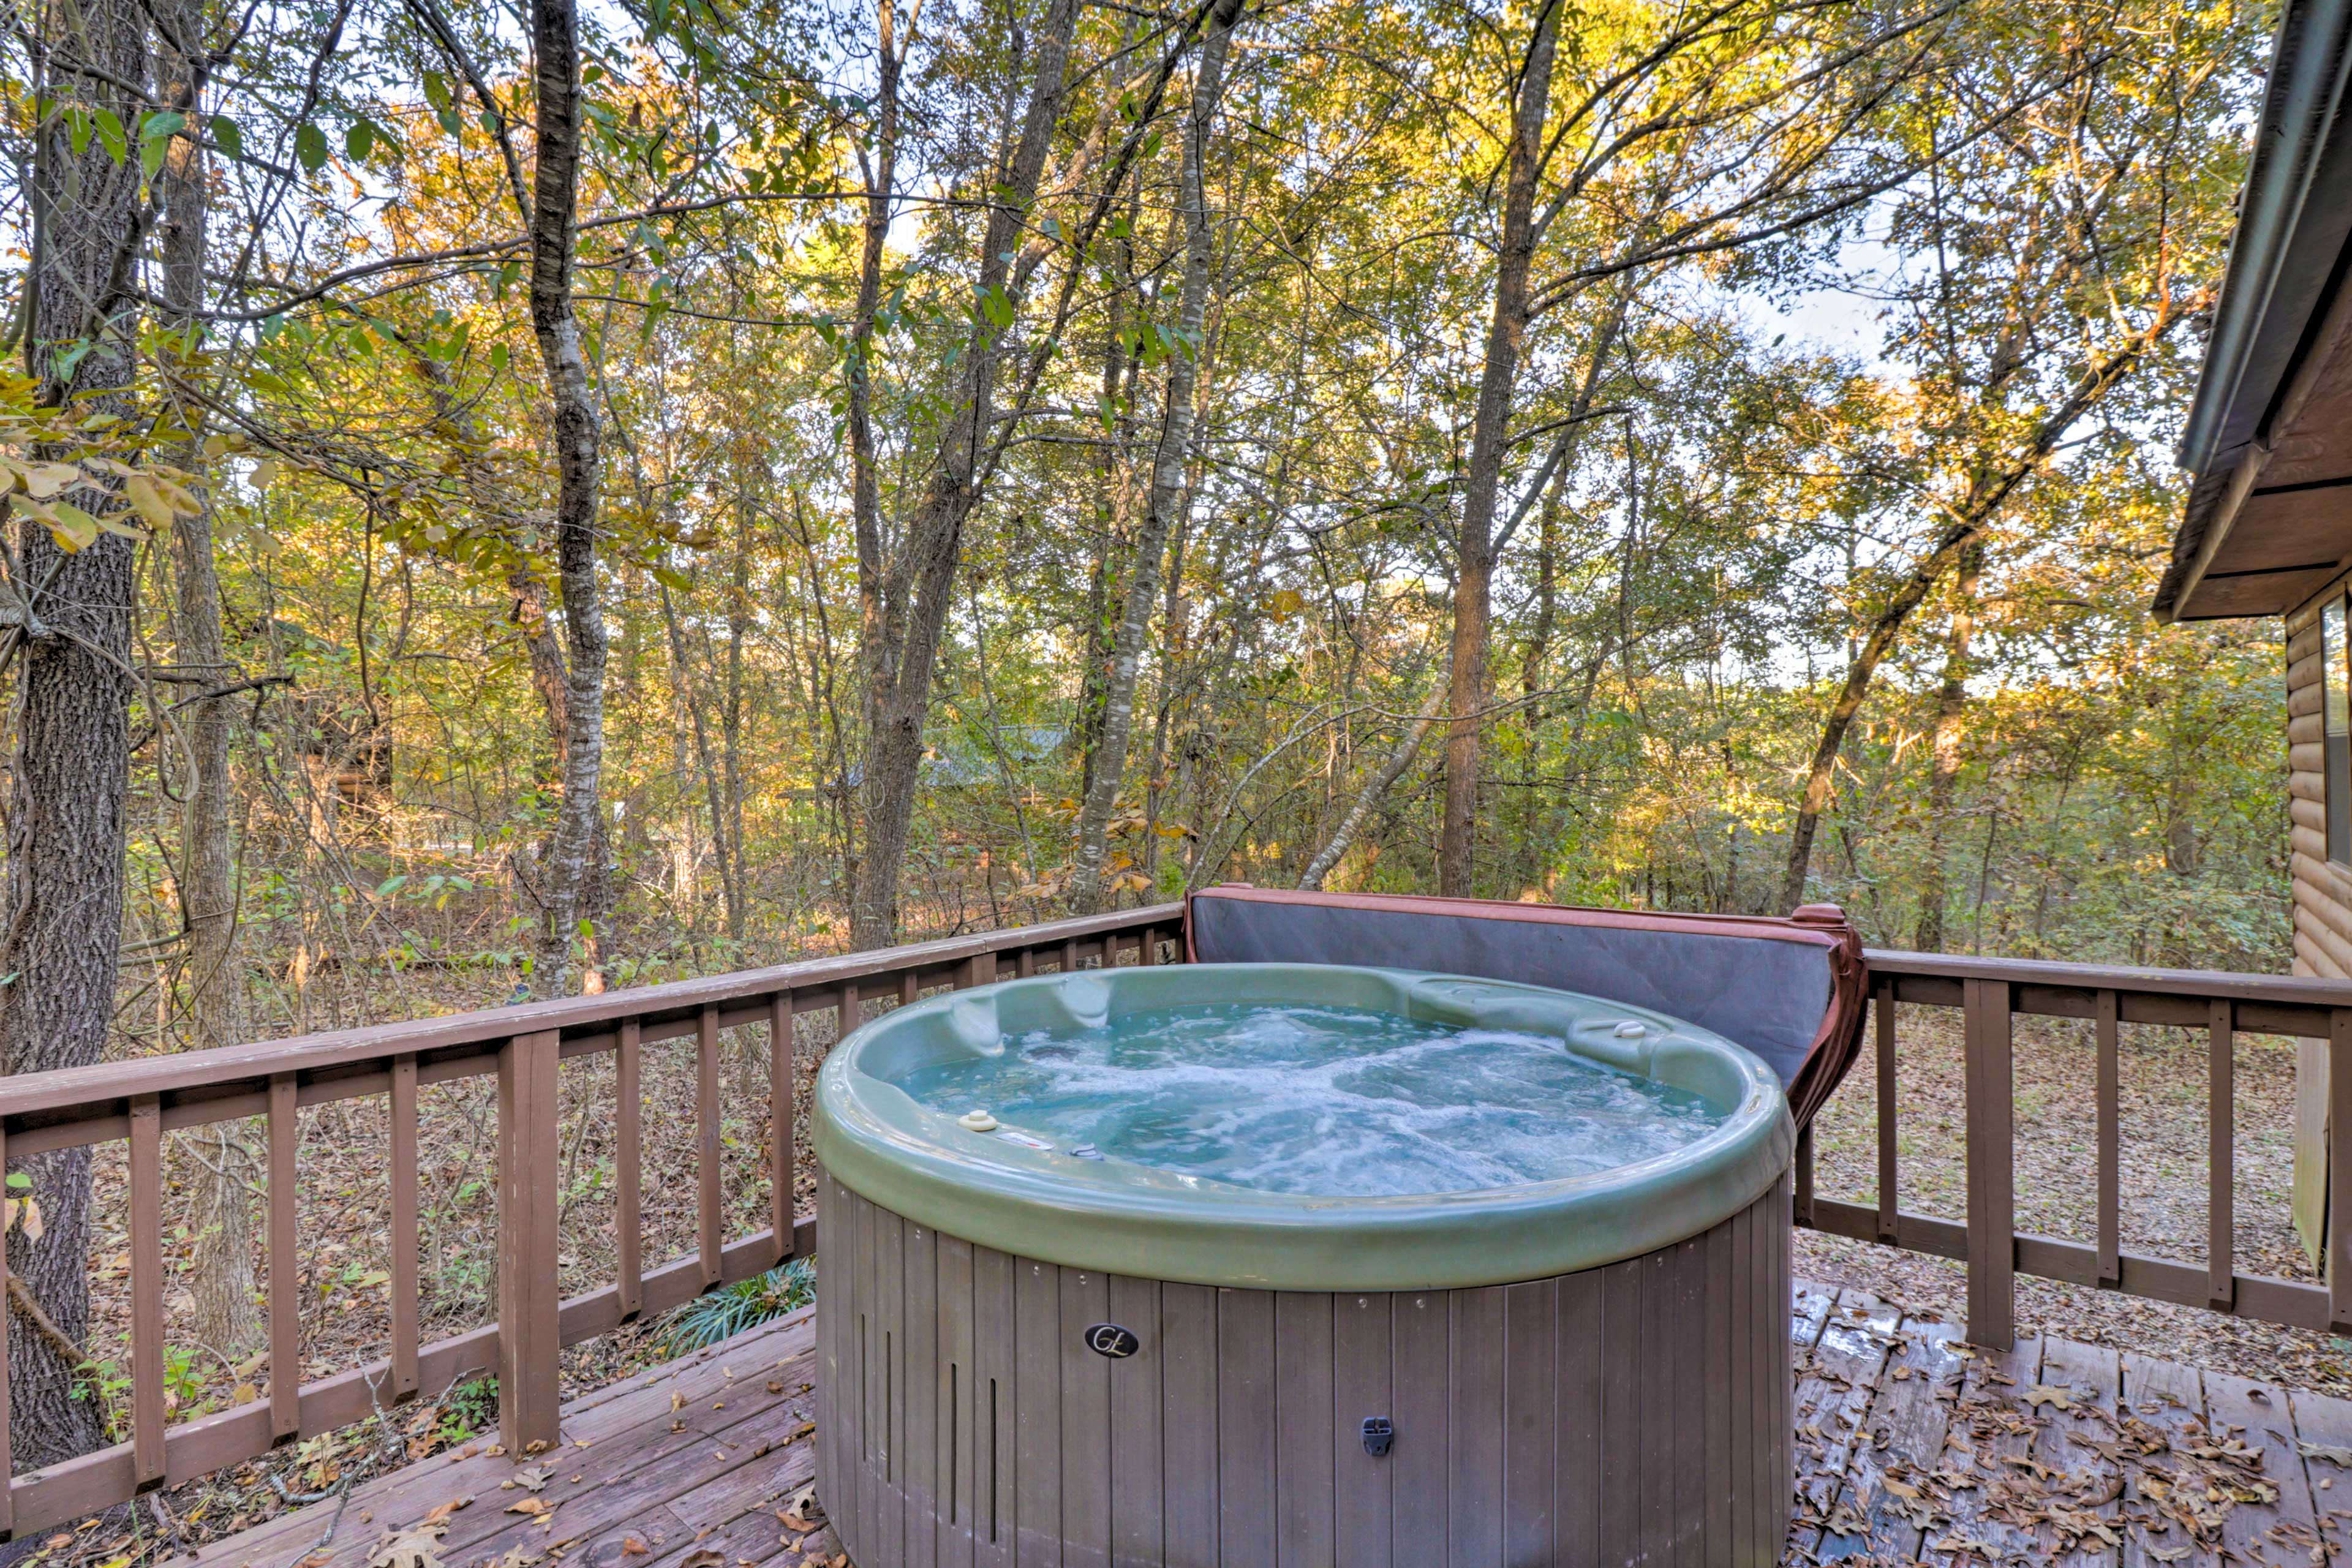 Throw on your swimsuits and soak in the hot tub.